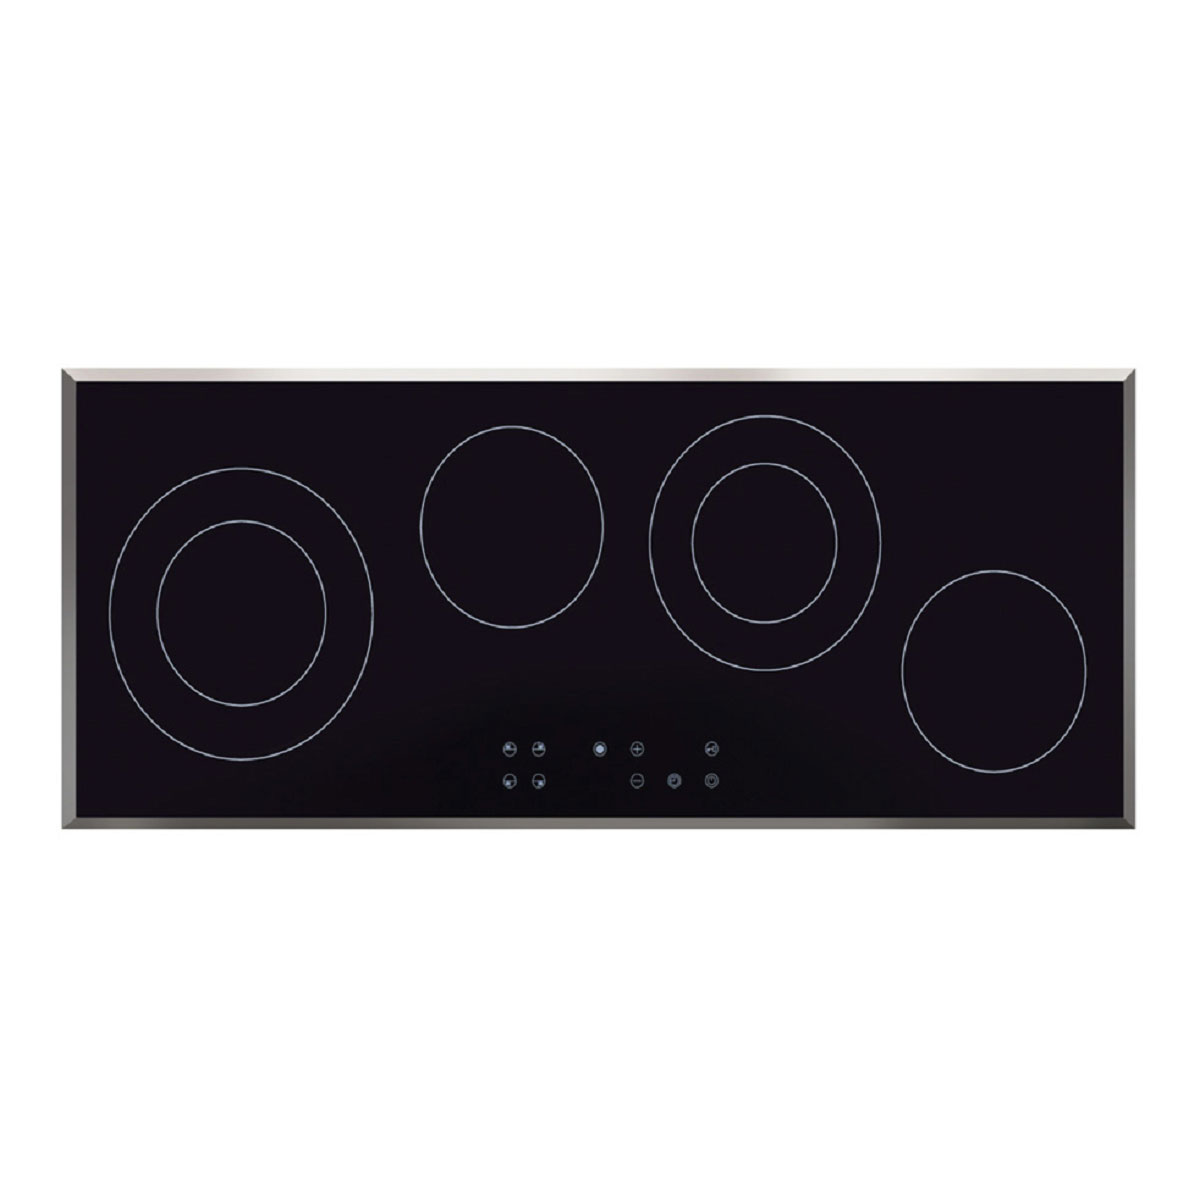 Euromaid CC9GE1 Electric Cooktop